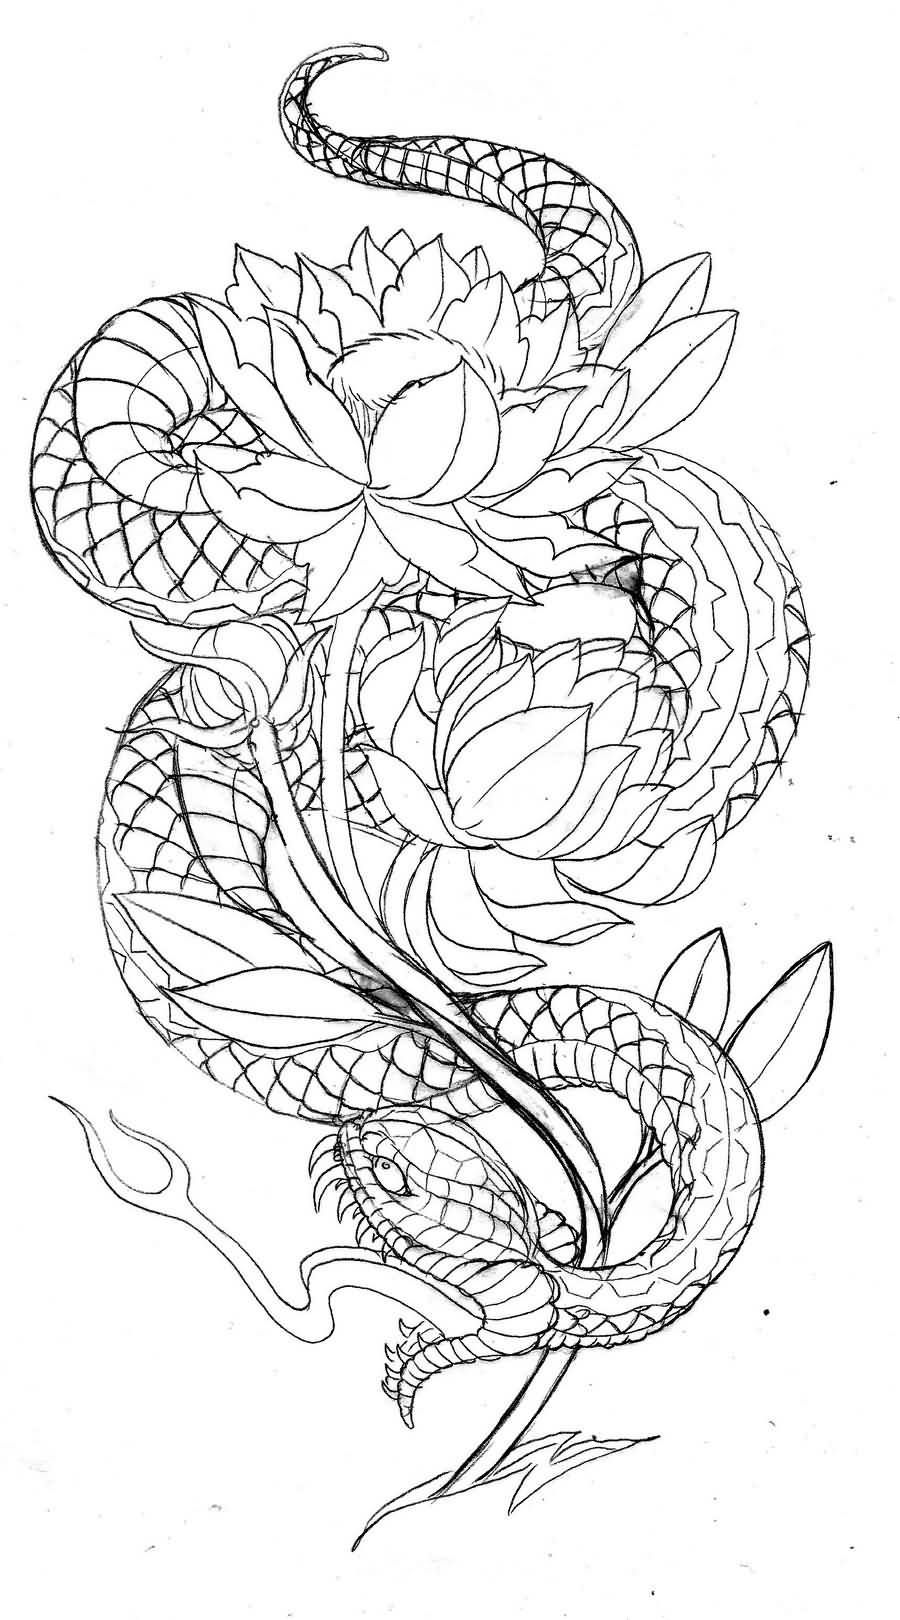 Image Result For Dragon Japanese Outline Snake Tattoo Design Japanese Tattoo Designs Japanese Snake Tattoo